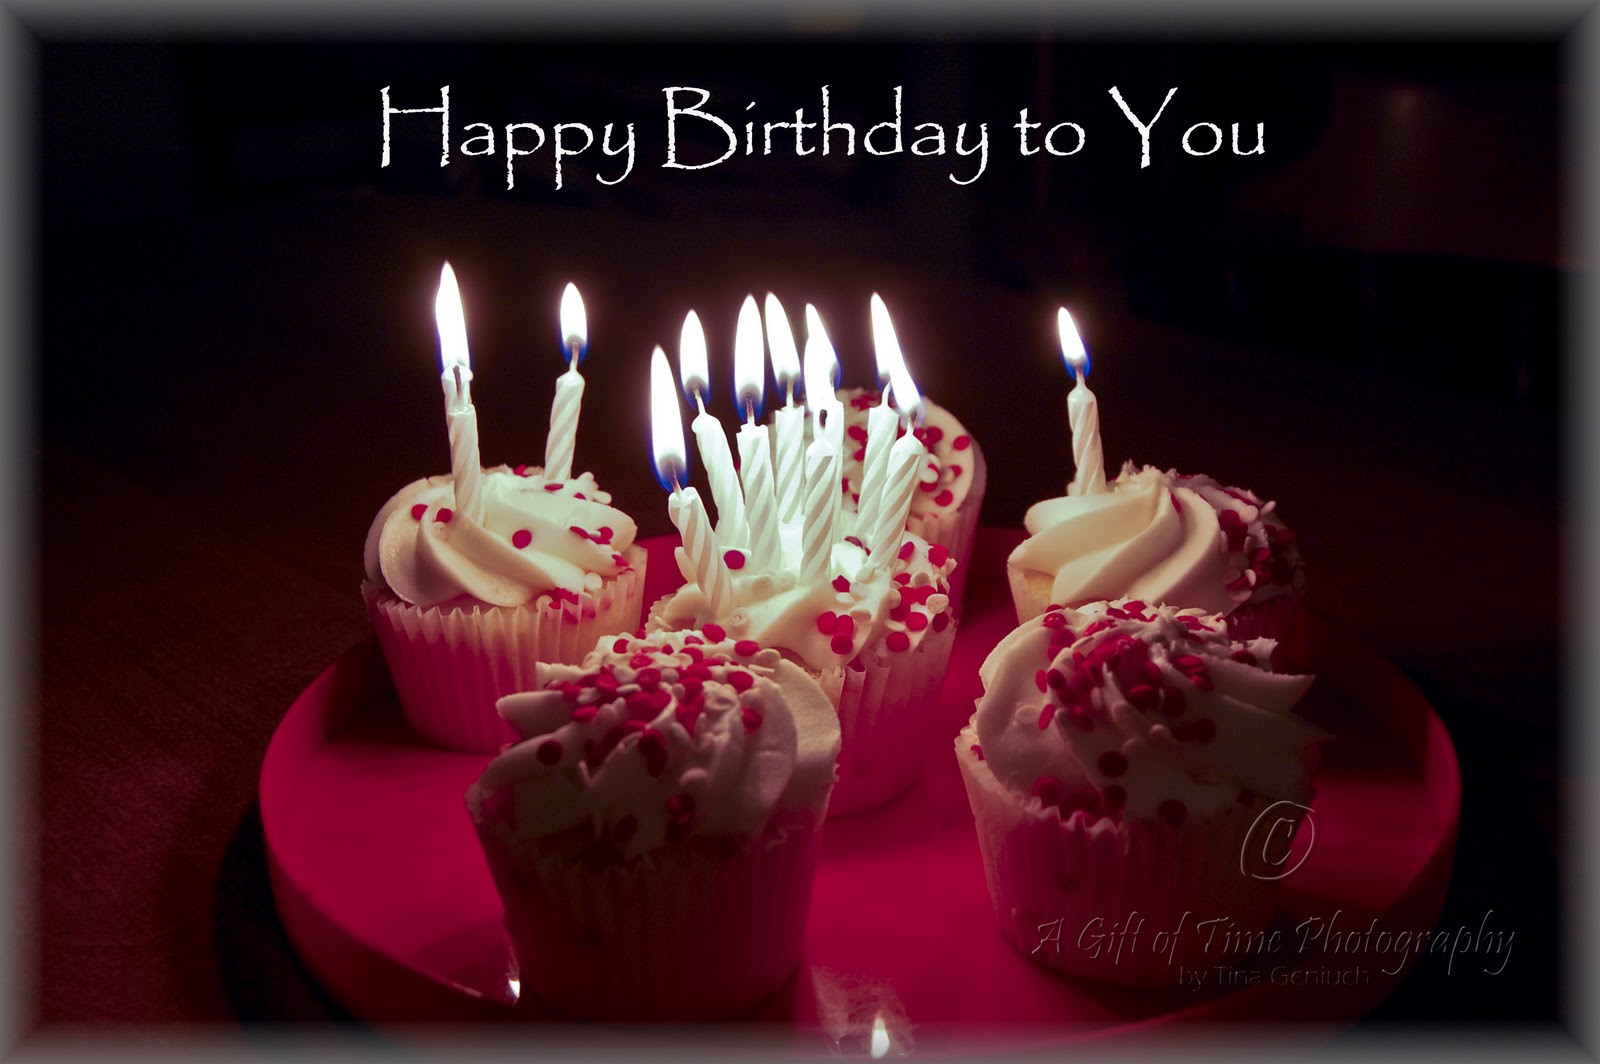 Best ideas about Birthday Wishes Cake . Save or Pin Birthday Cake Wishes For Friend Birthday HD Cards Now.